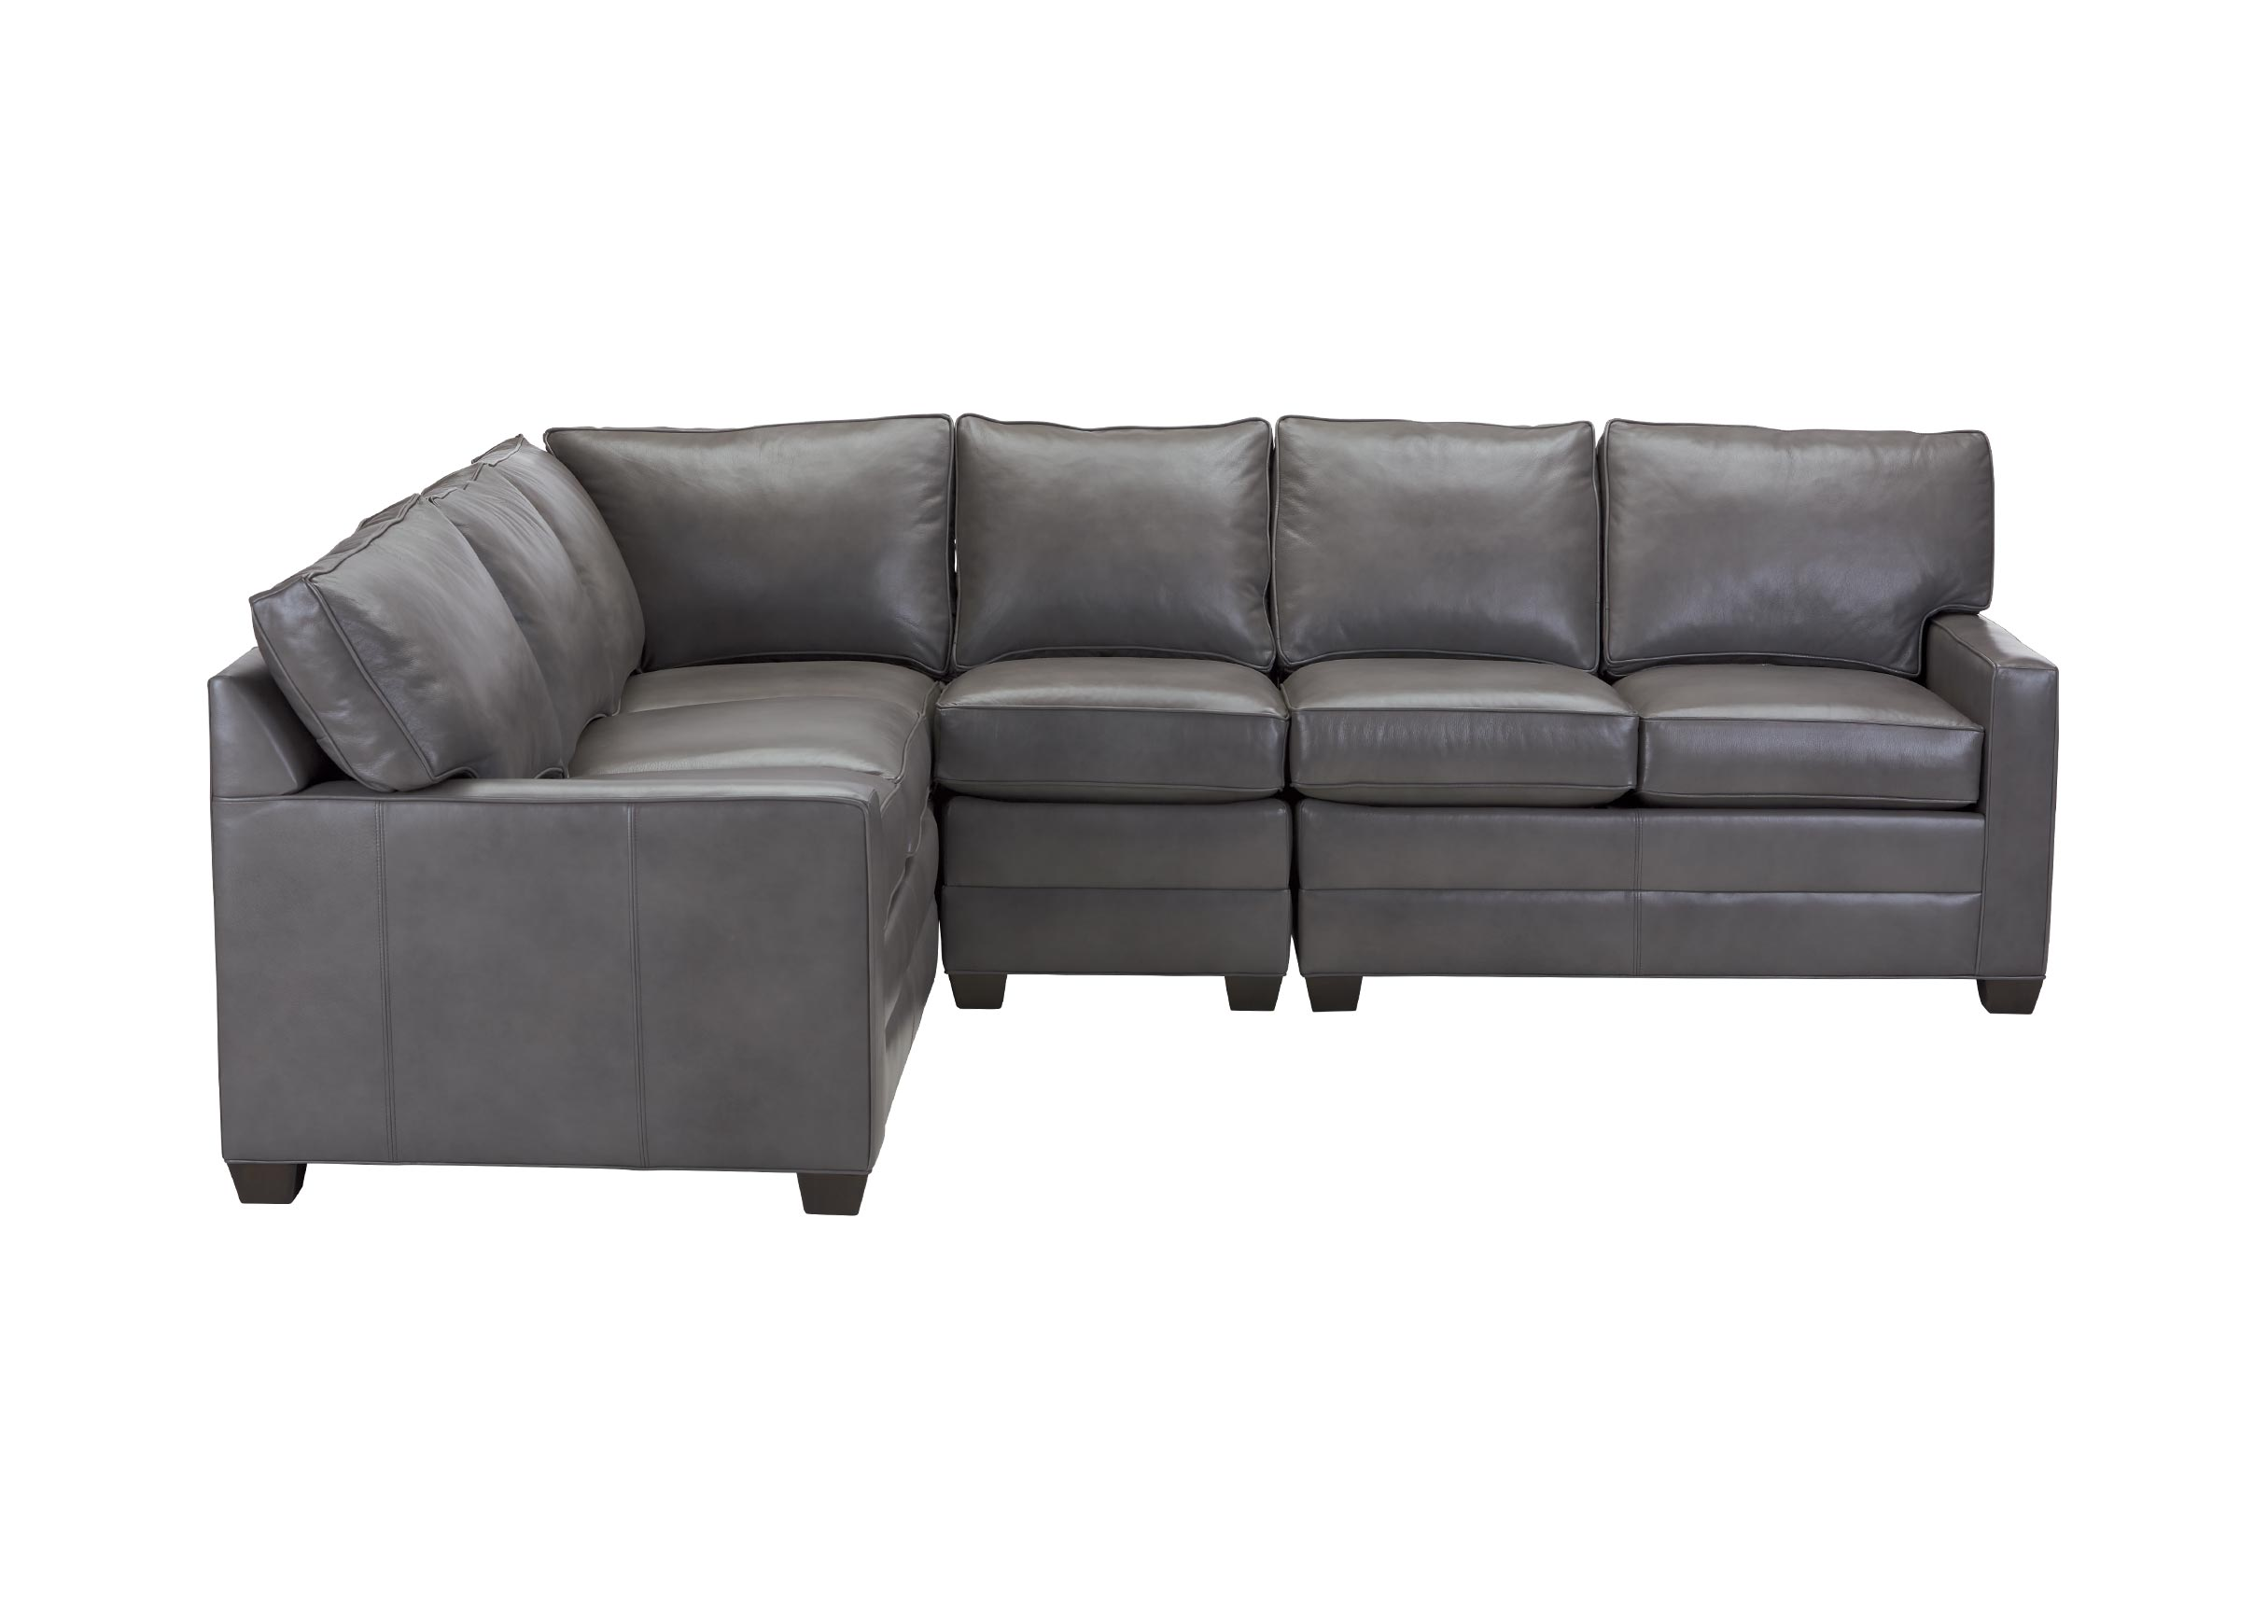 bennett leather sofa cindy crawford blue track arm four piece sectional quick ship